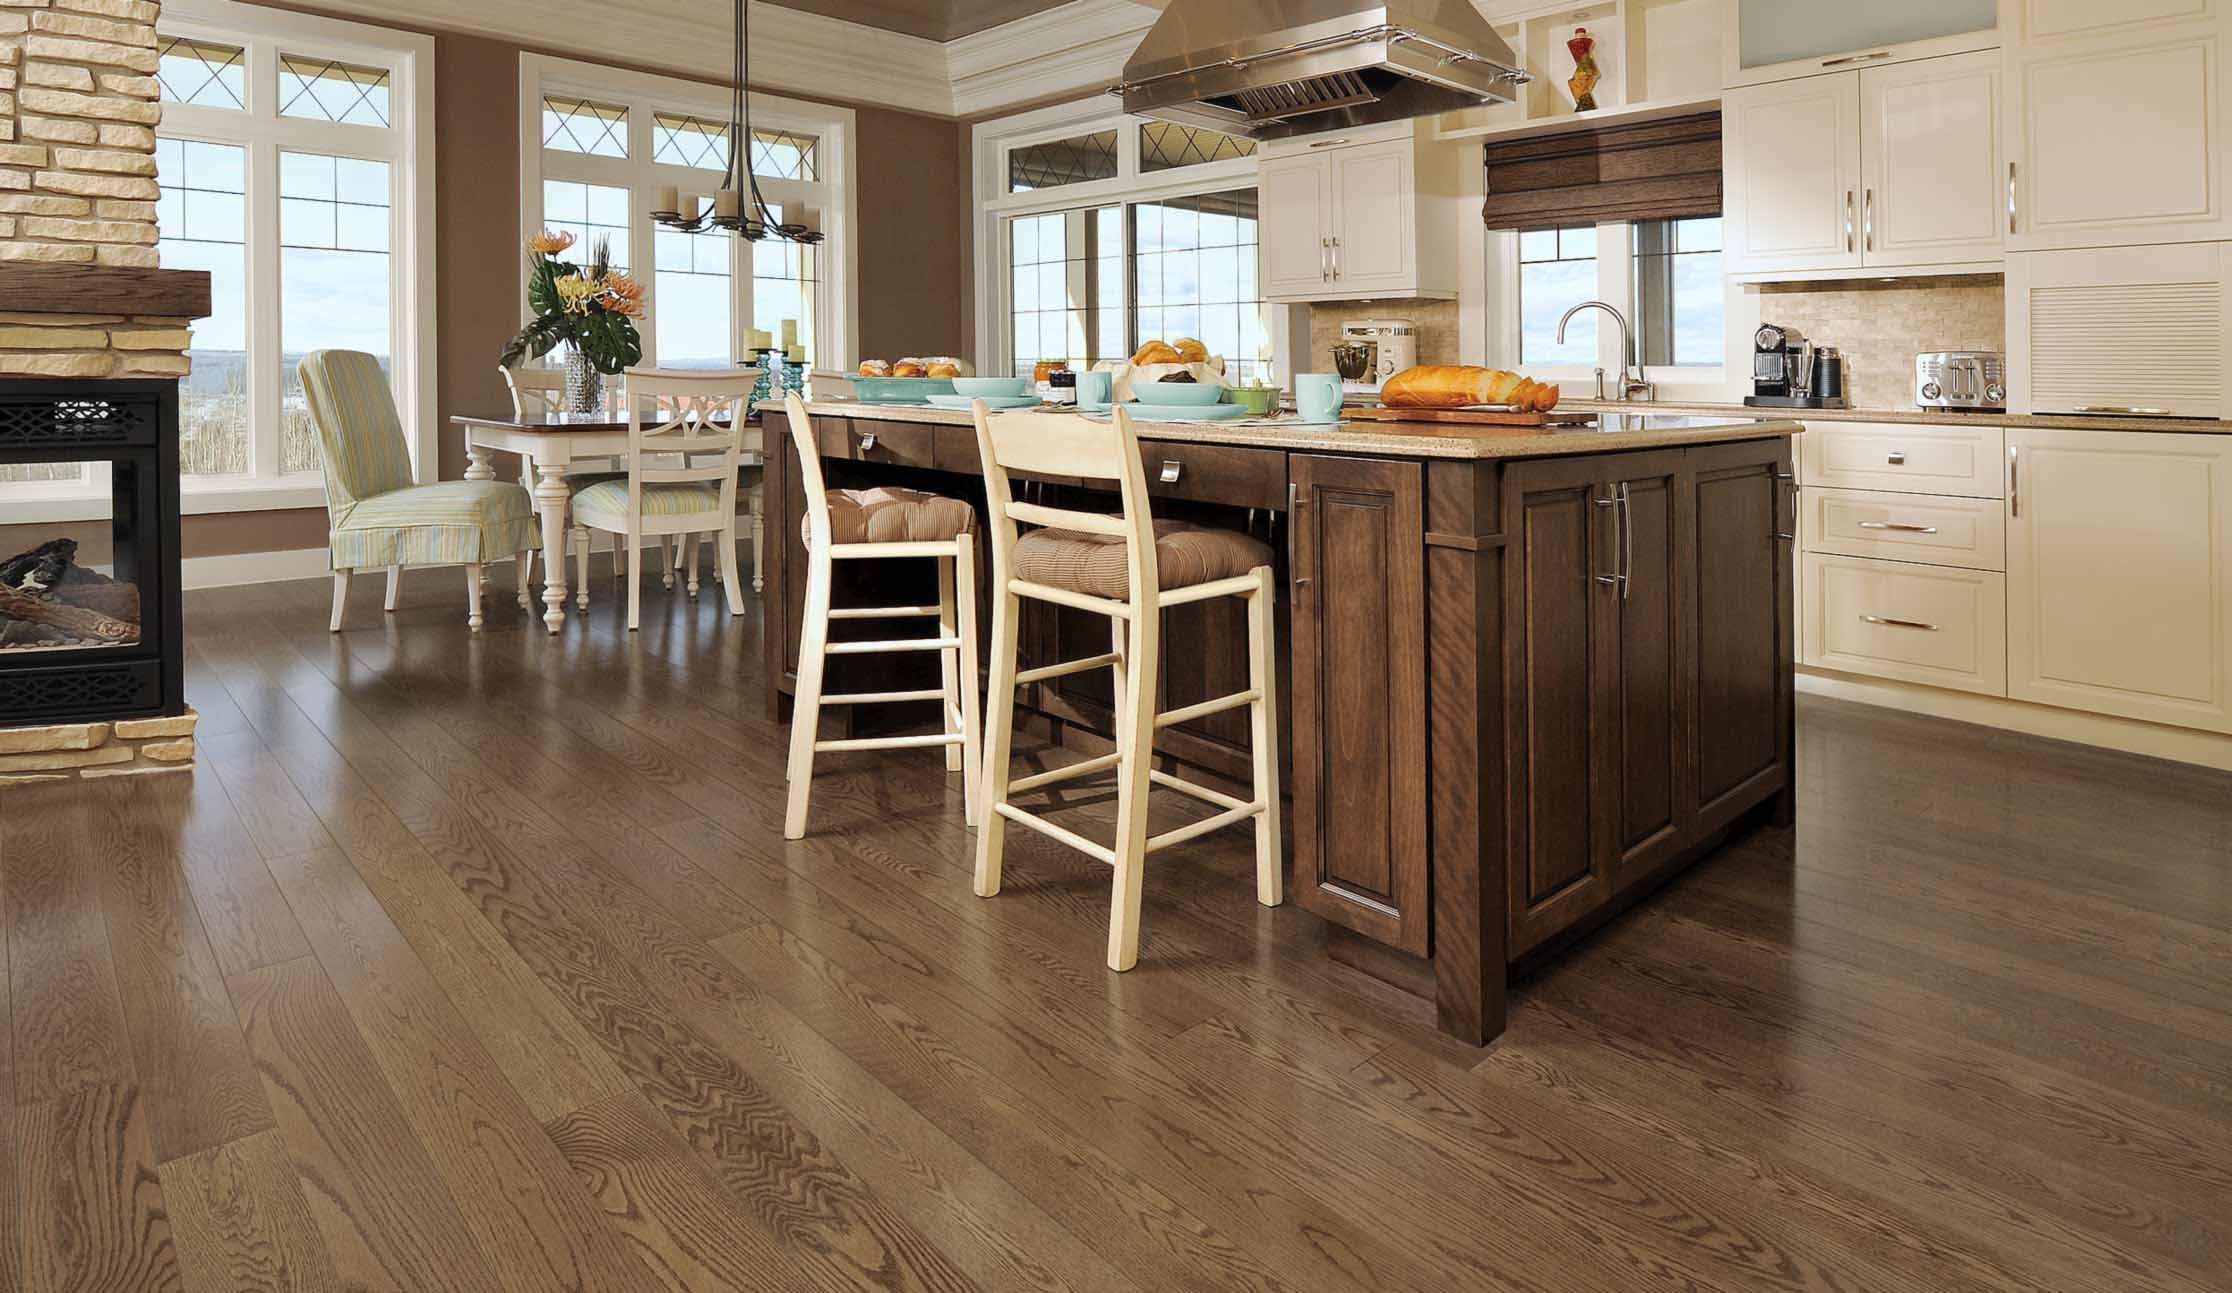 Red oak savanna mirage hardwood flooring call for for Mirage hardwood flooring